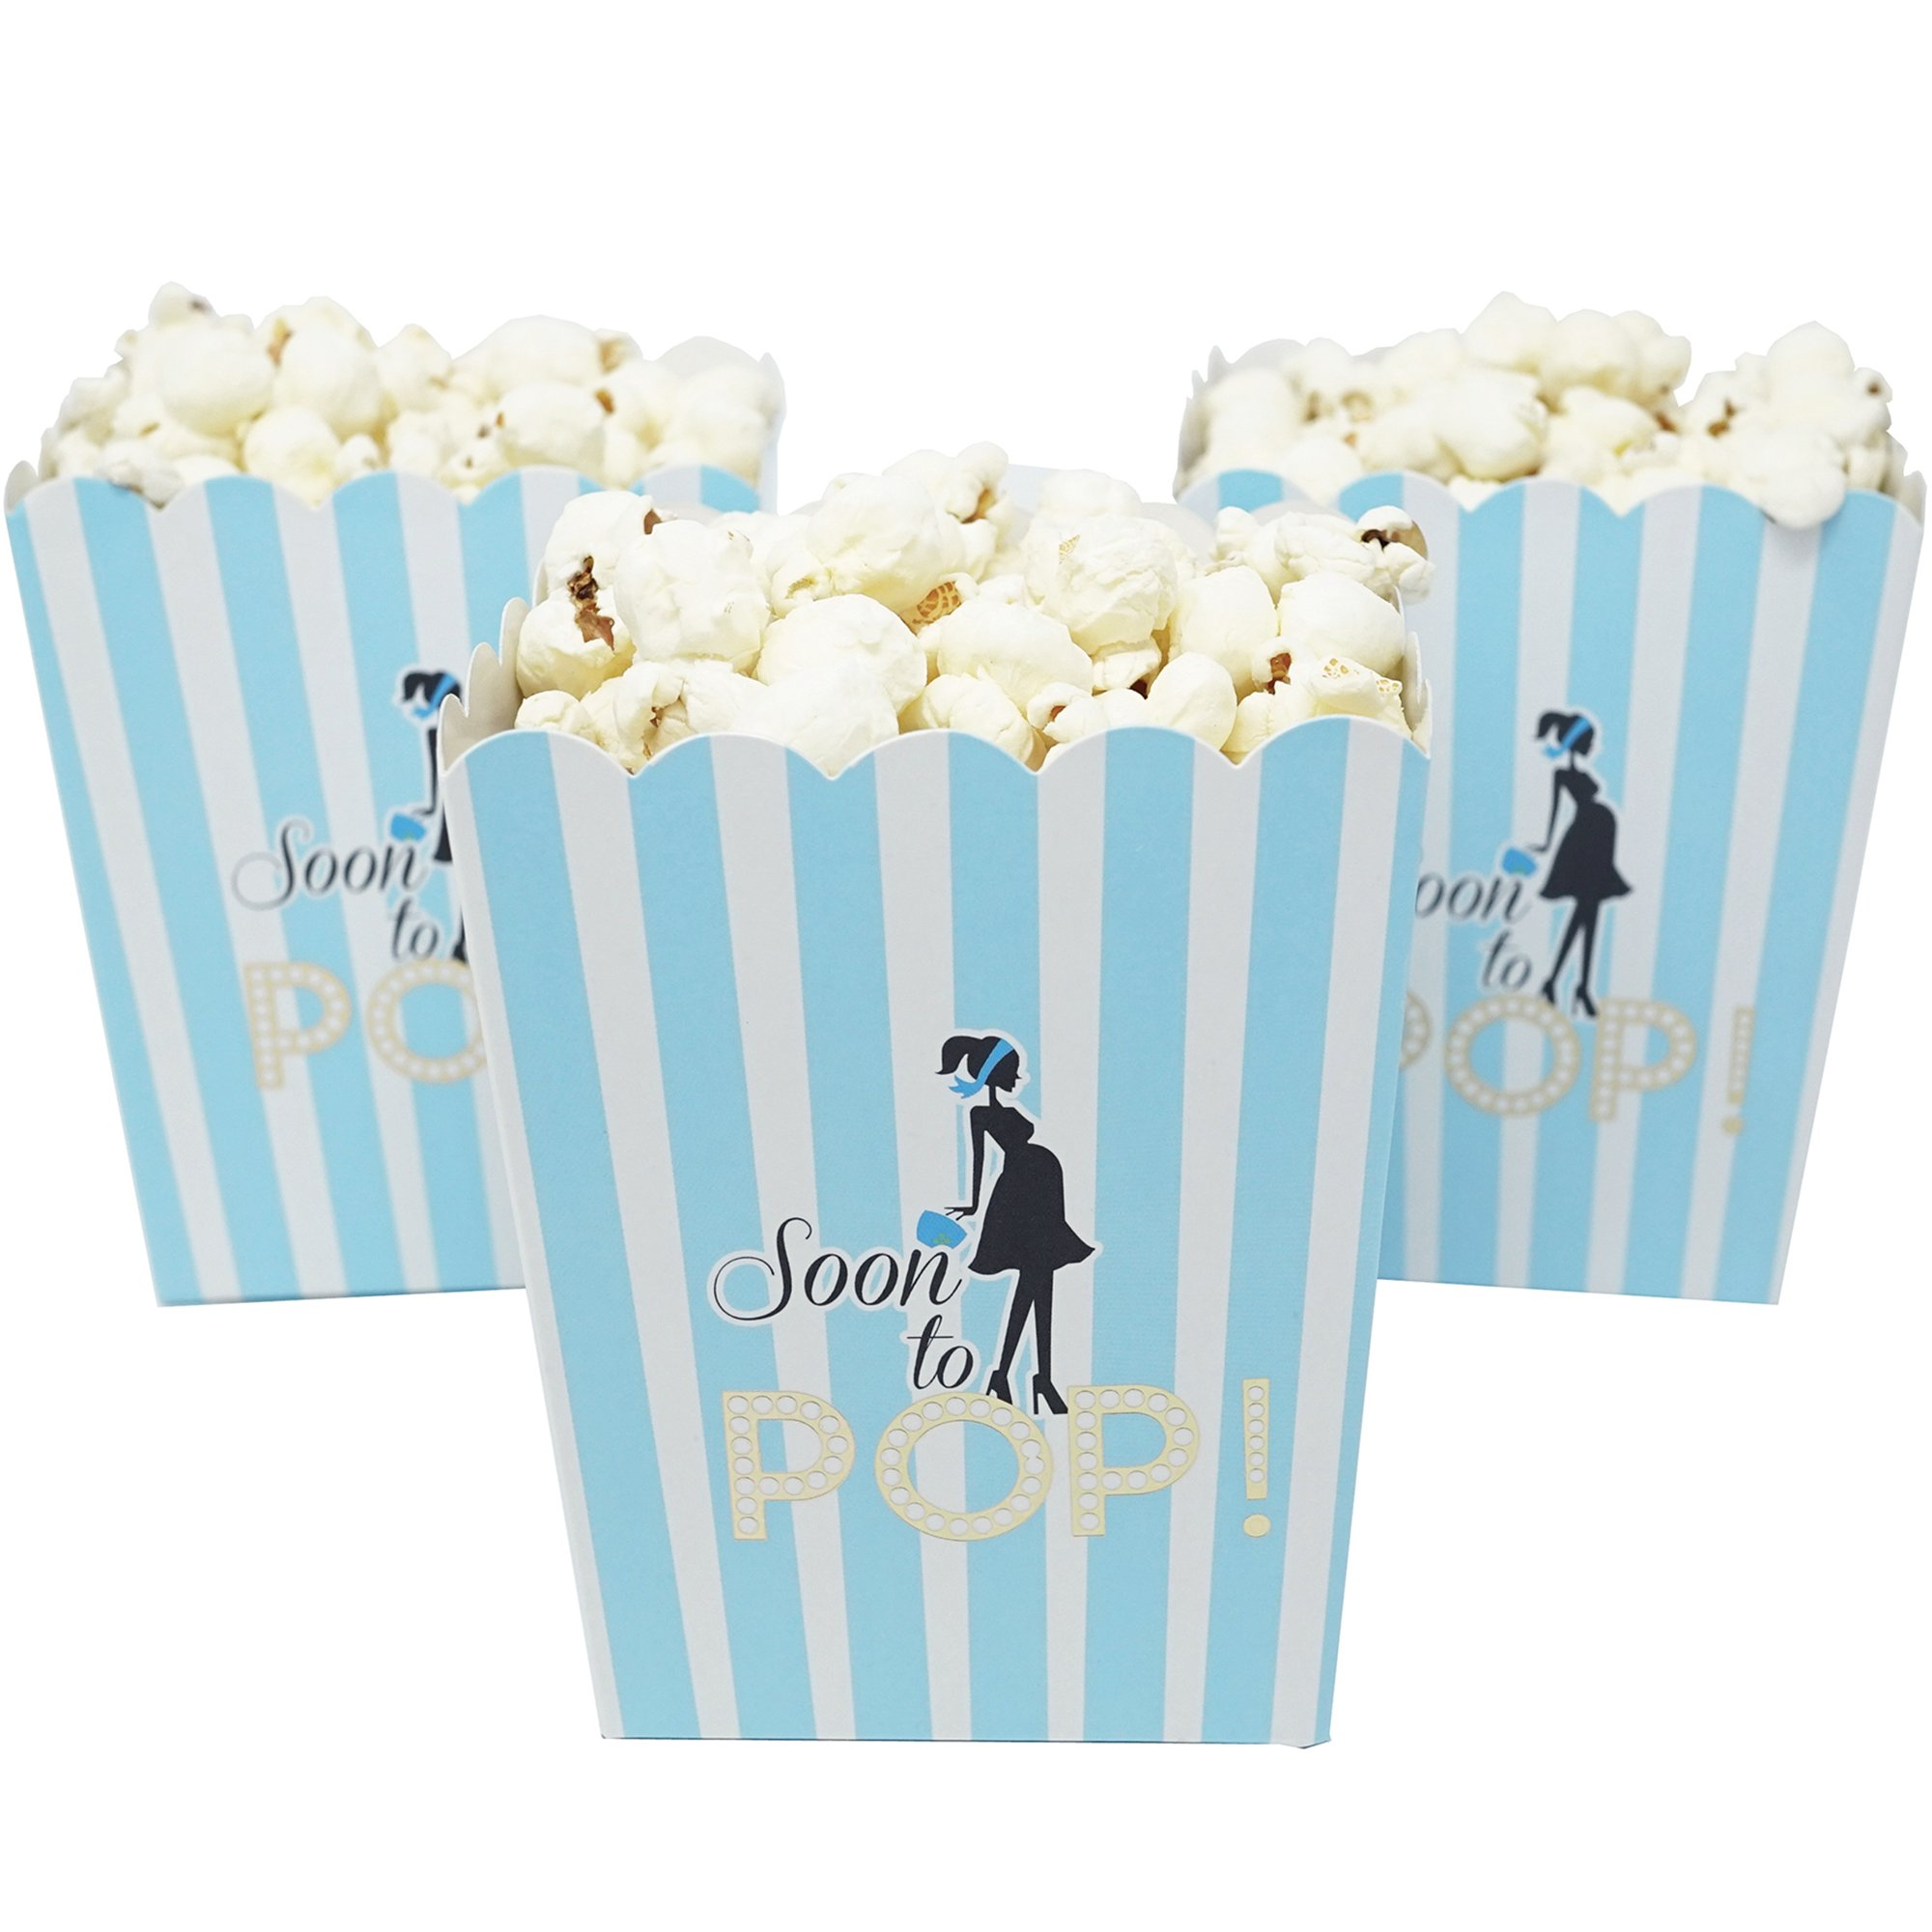 ''Soon to Pop'' Popcorn Favor Box for Baby Shower Party, Small Size, 20 Count by Chloe Elizabeth (Baby Blue)